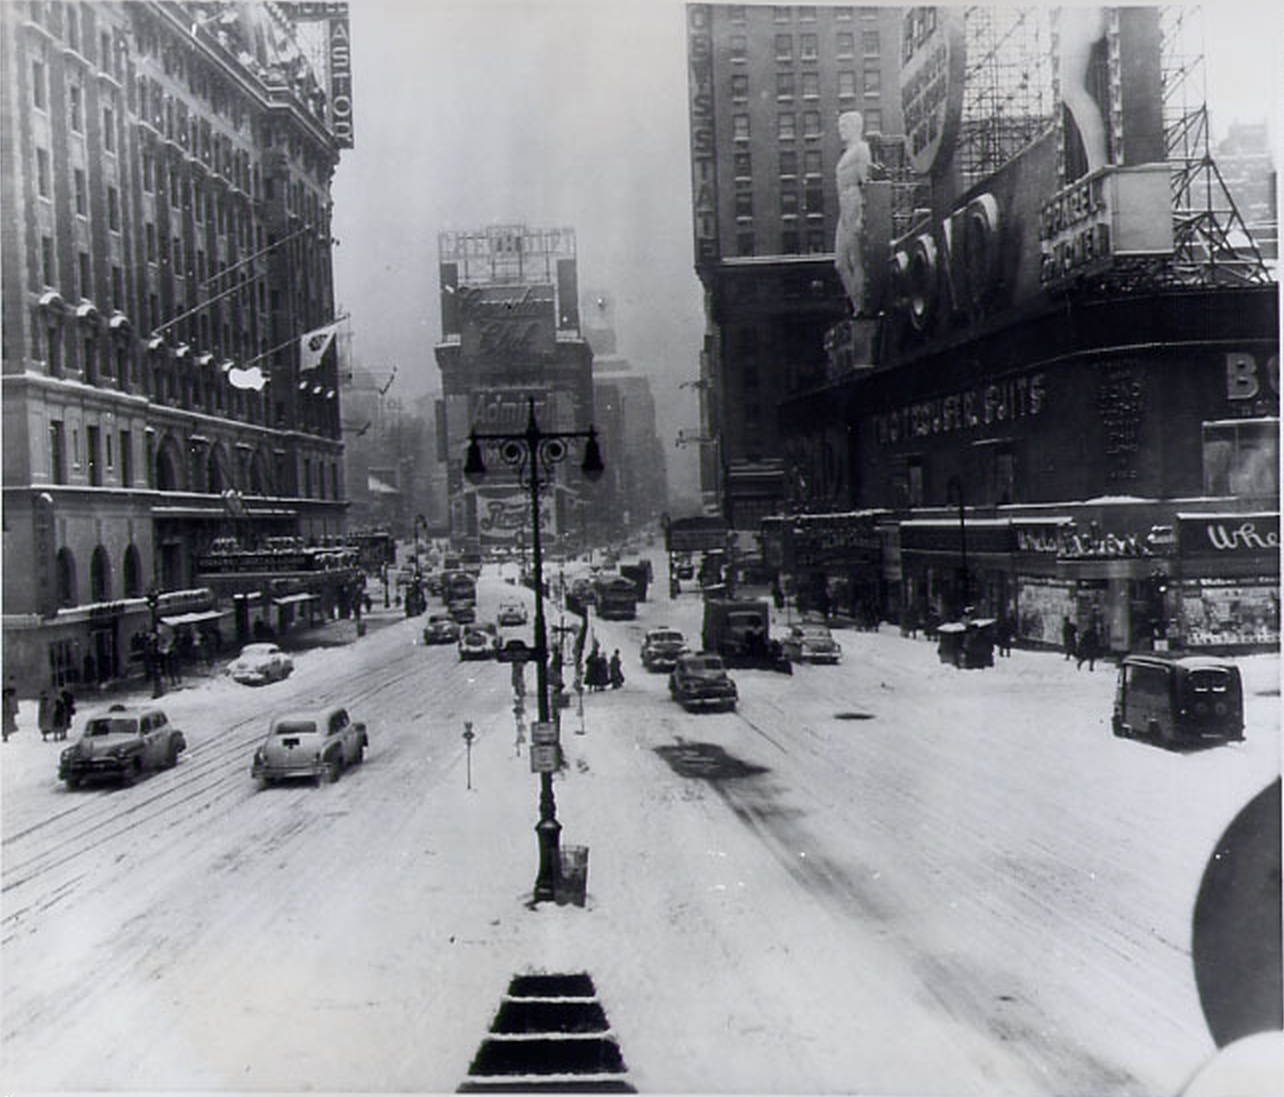 Times Square January 11, 1954 - Lots of Snow And Cold Weather